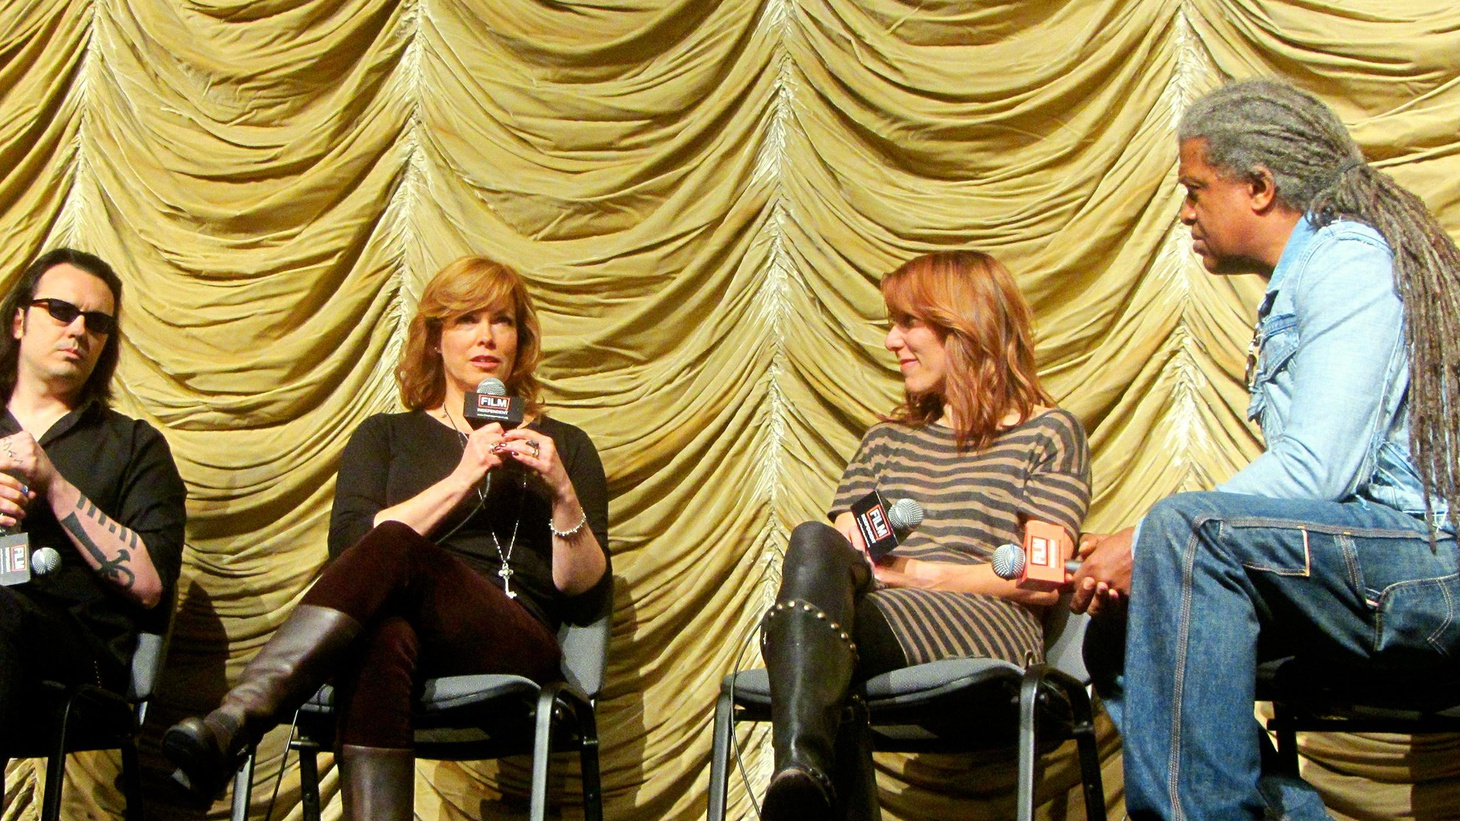 BONUS EPISODE: Director Amy Berg and co-producers/subjects Lorri Davis and Damien Echols on their documentary West of Memphis, recorded live at Film Independent at LACMA.